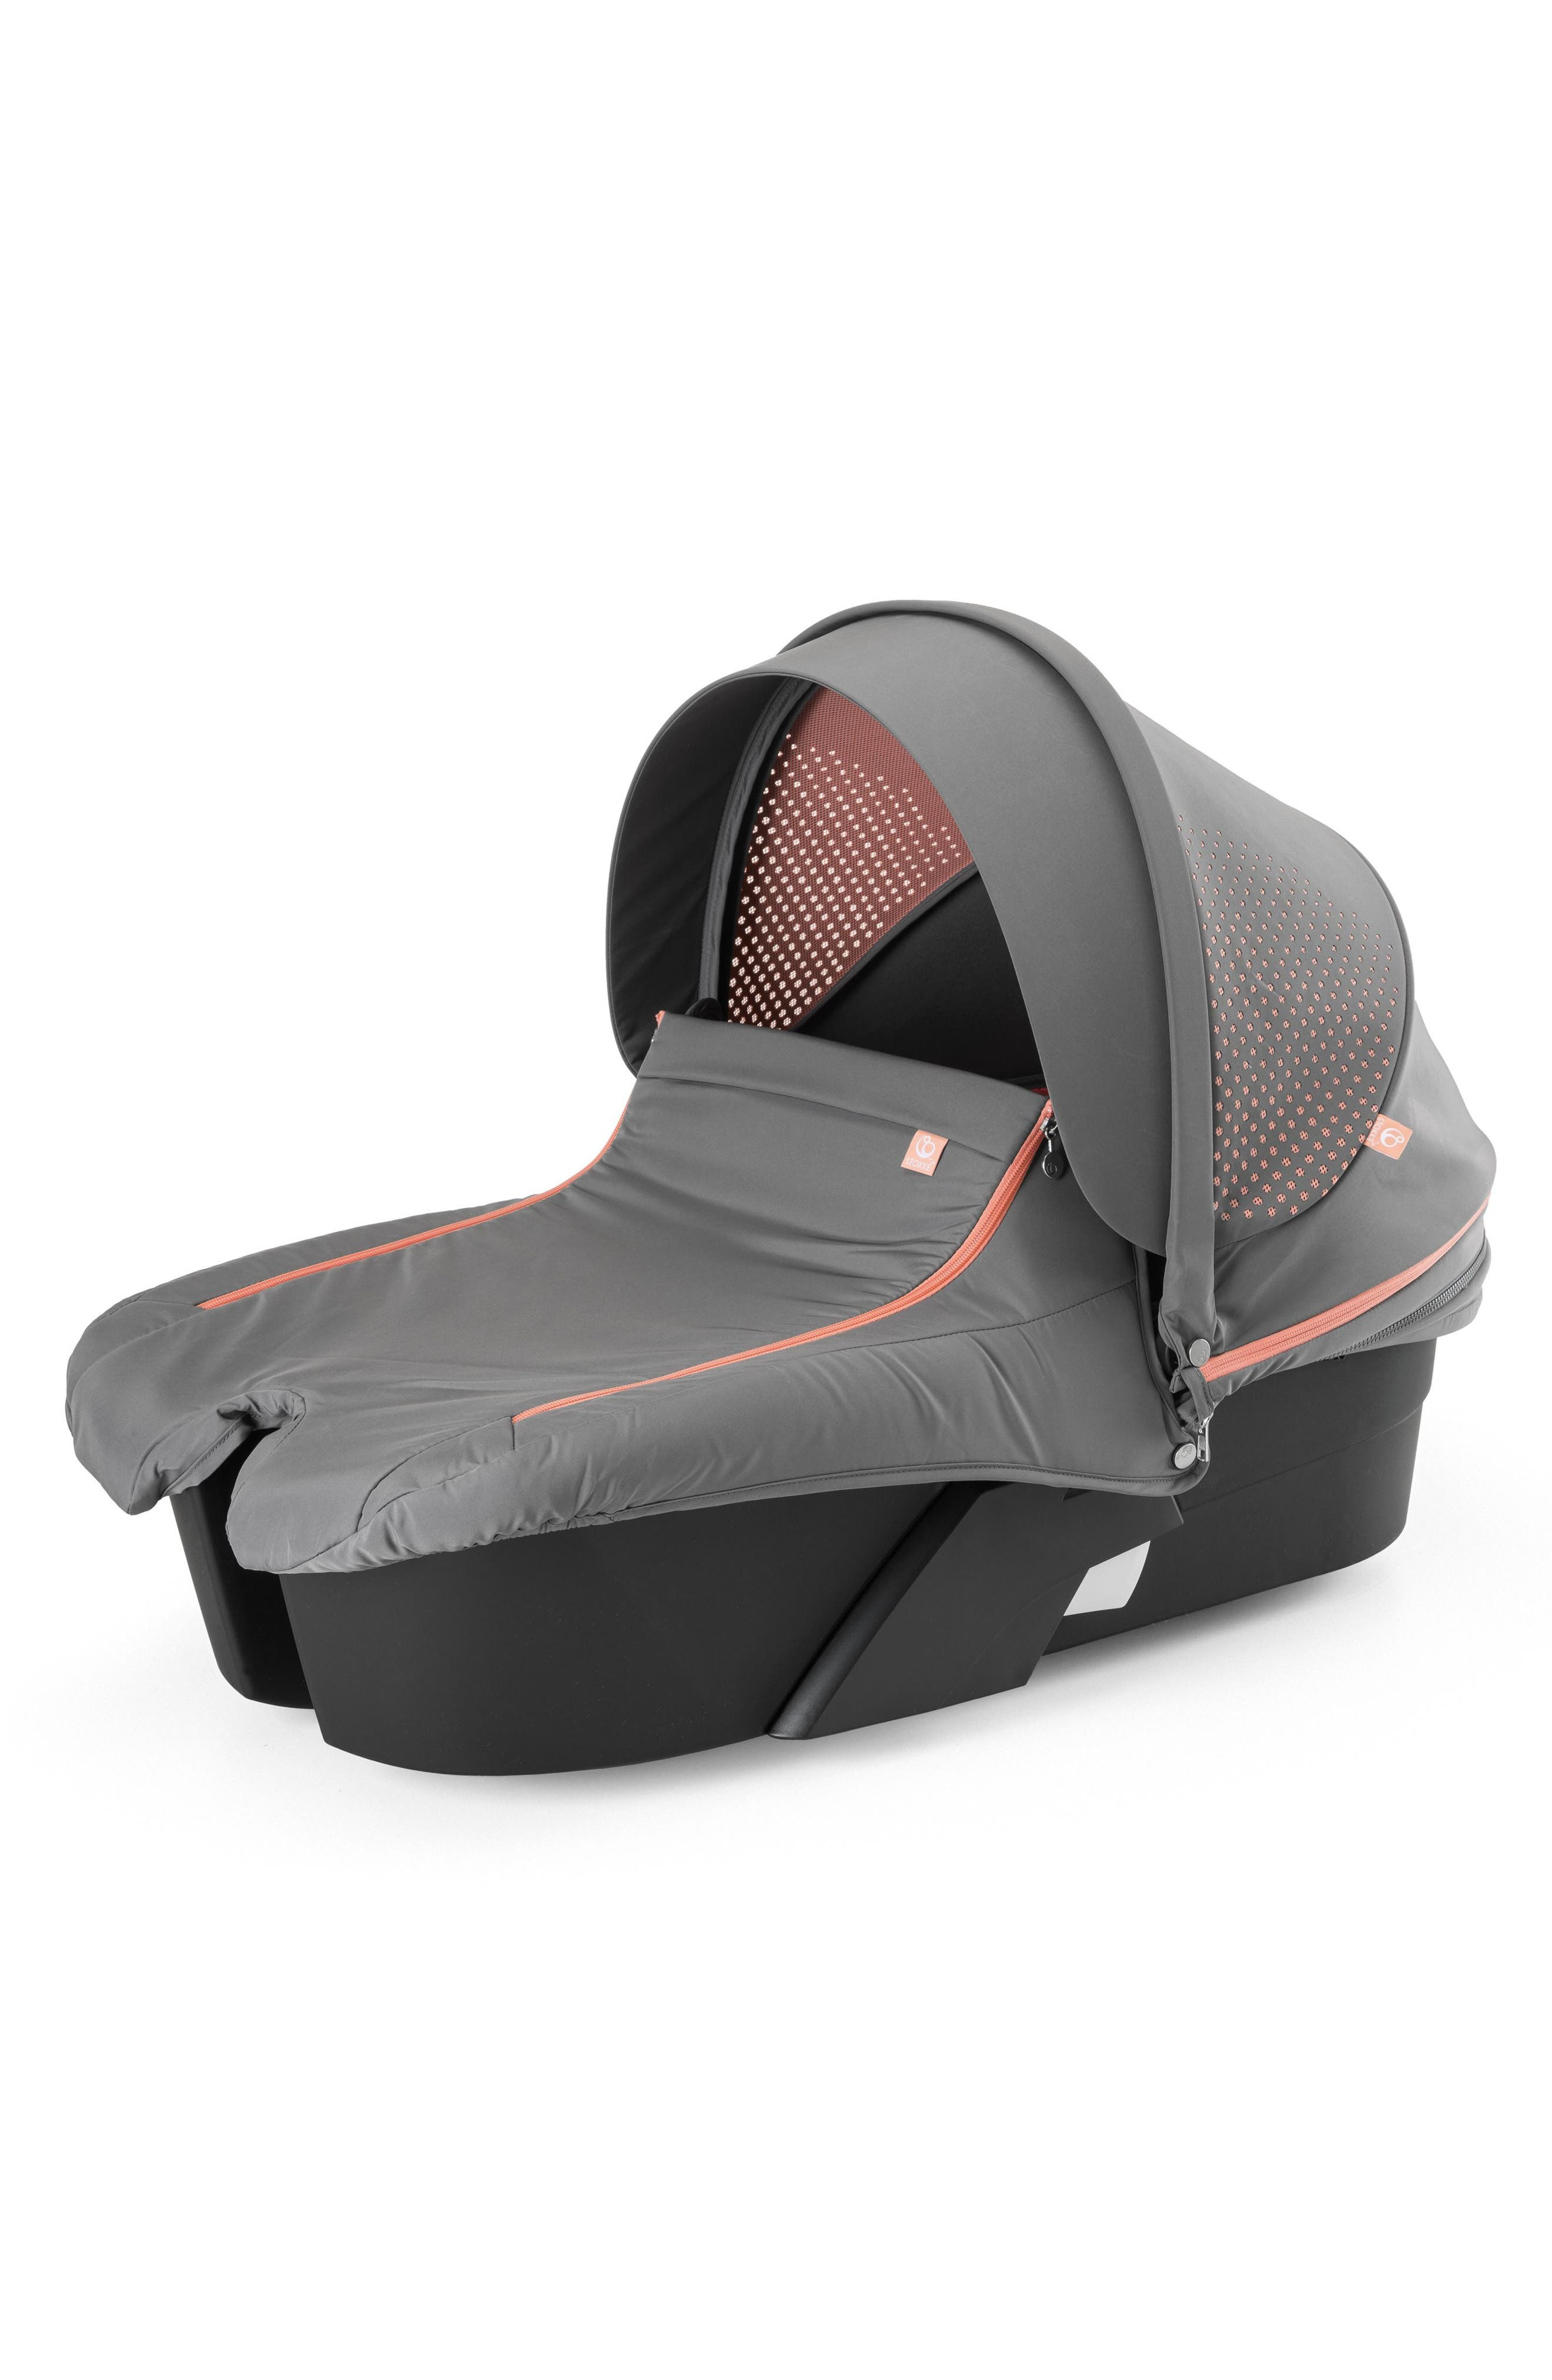 Xplory<sup>®</sup> Athleisure Stroller Carry Cot,                             Main thumbnail 1, color,                             950